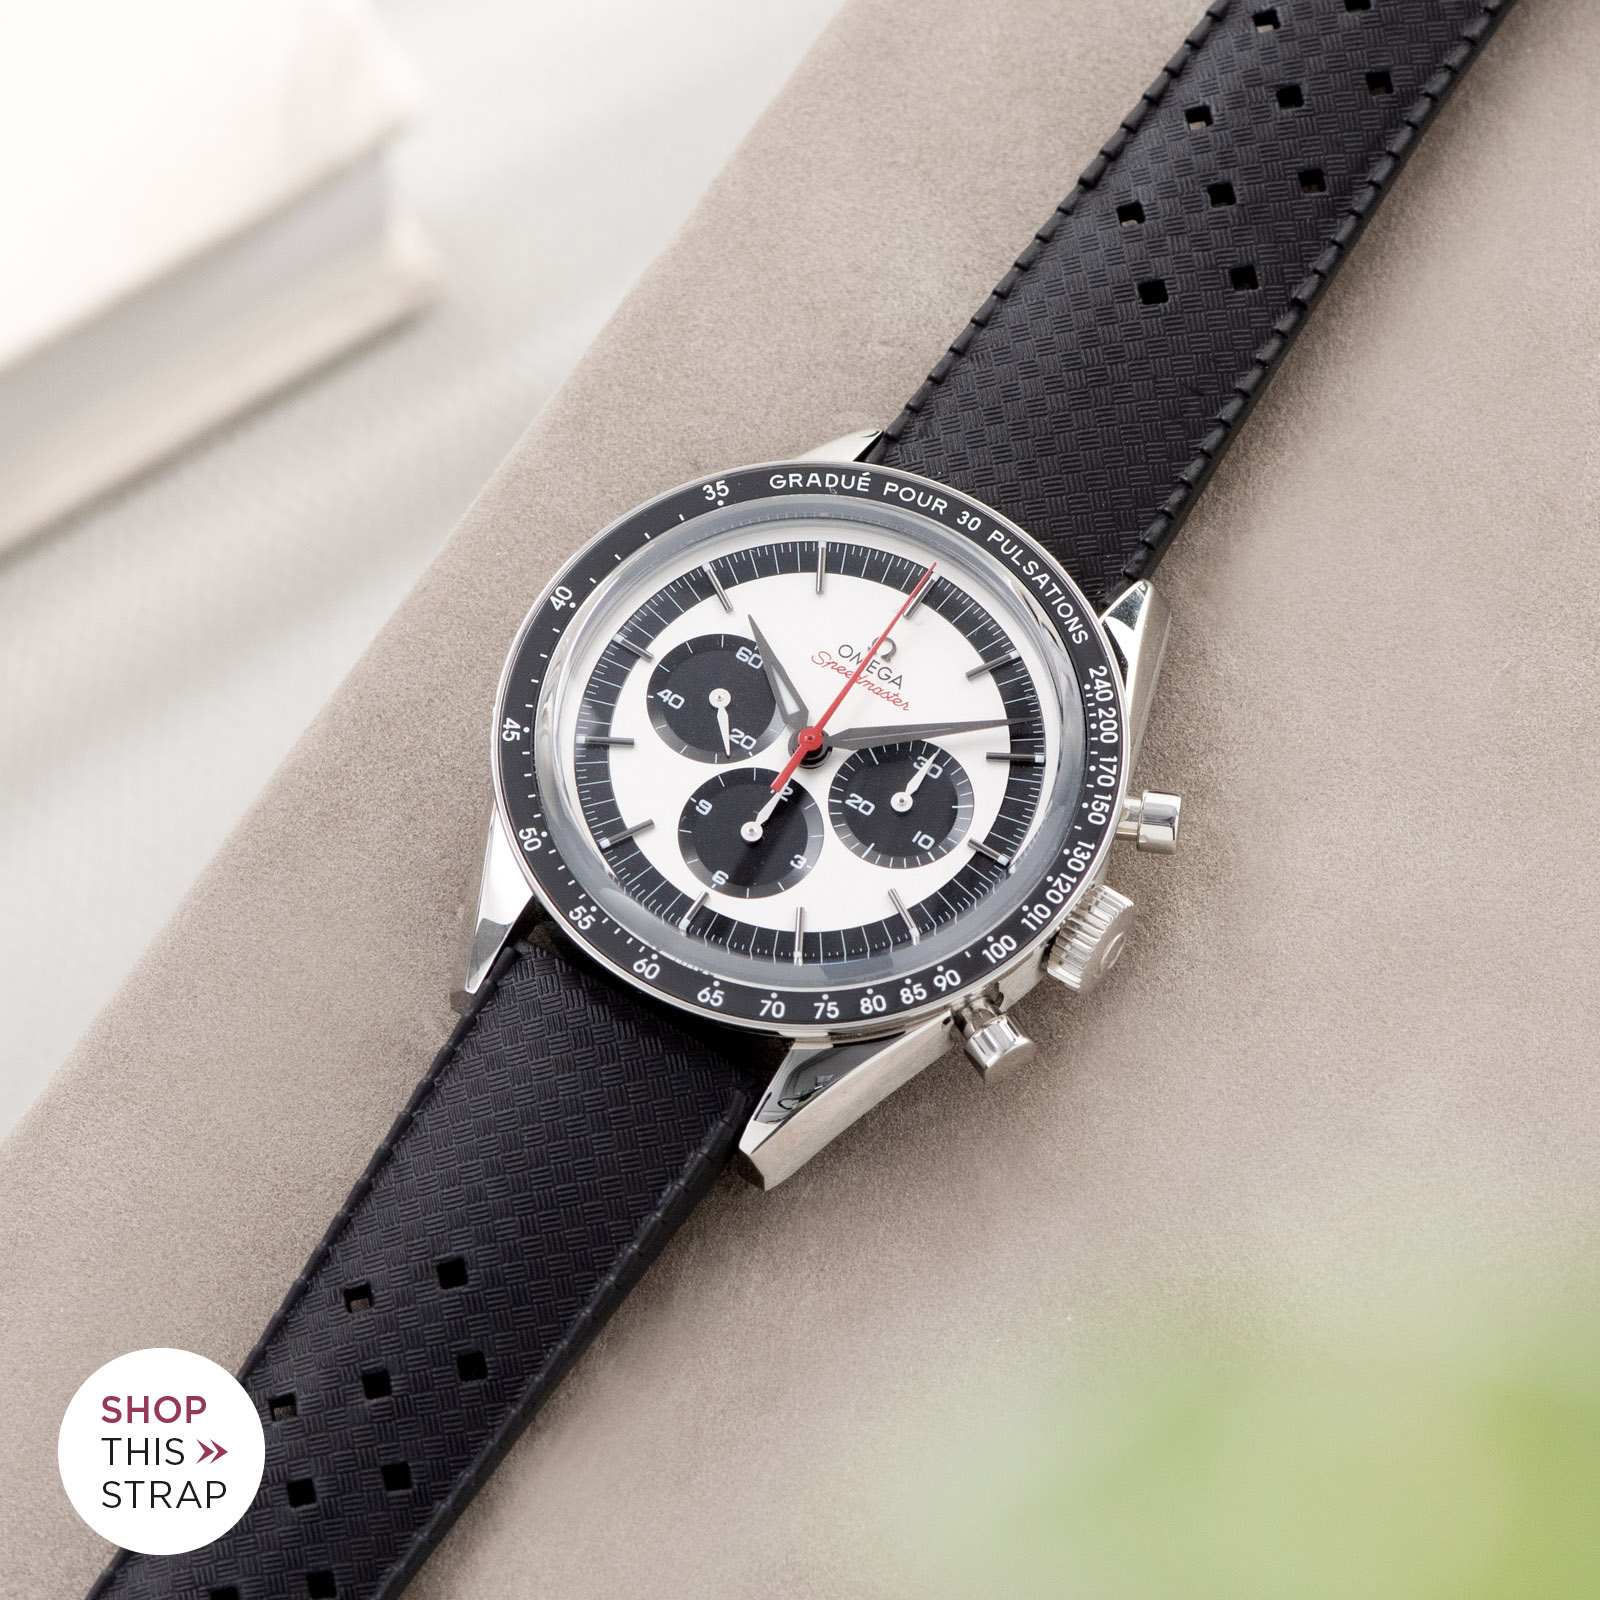 Bulang and Sons_Strap Guide_Omega Speedmaster 2998_Nautic Basket Weave Black Rubber Style Watch Strap